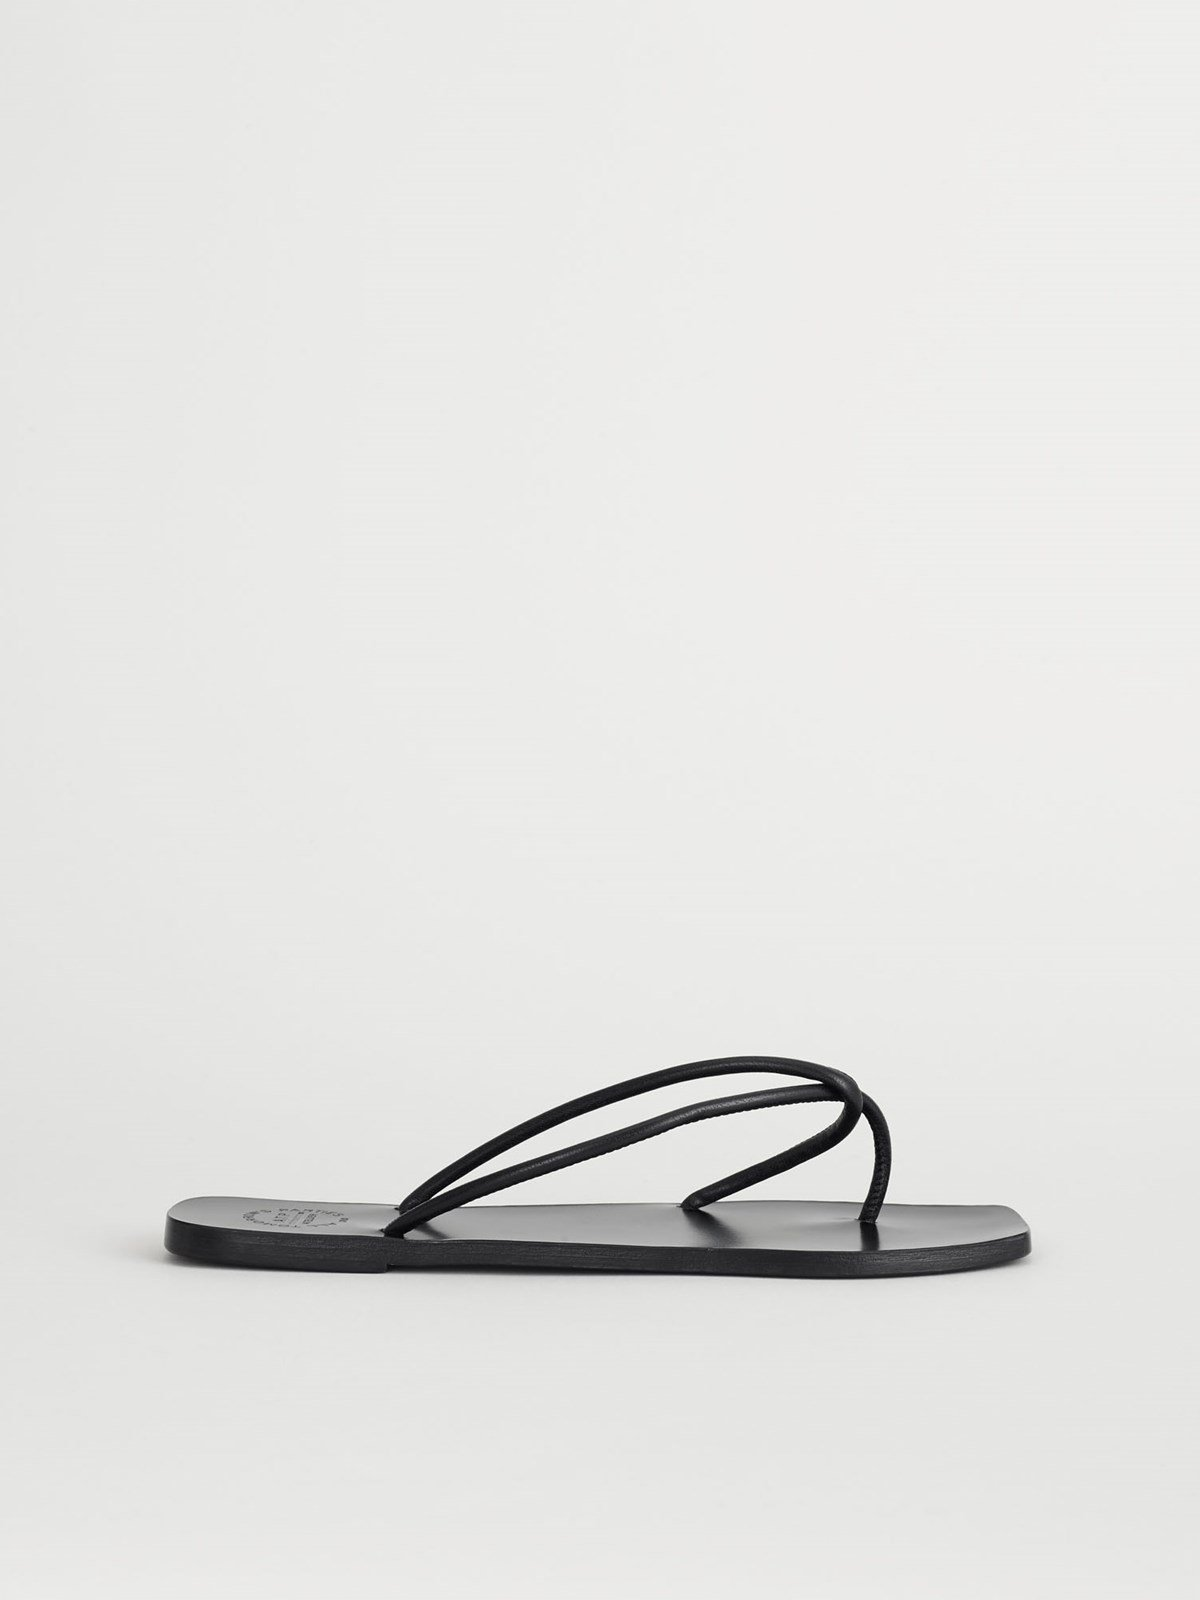 Alessano Black Flat sandals